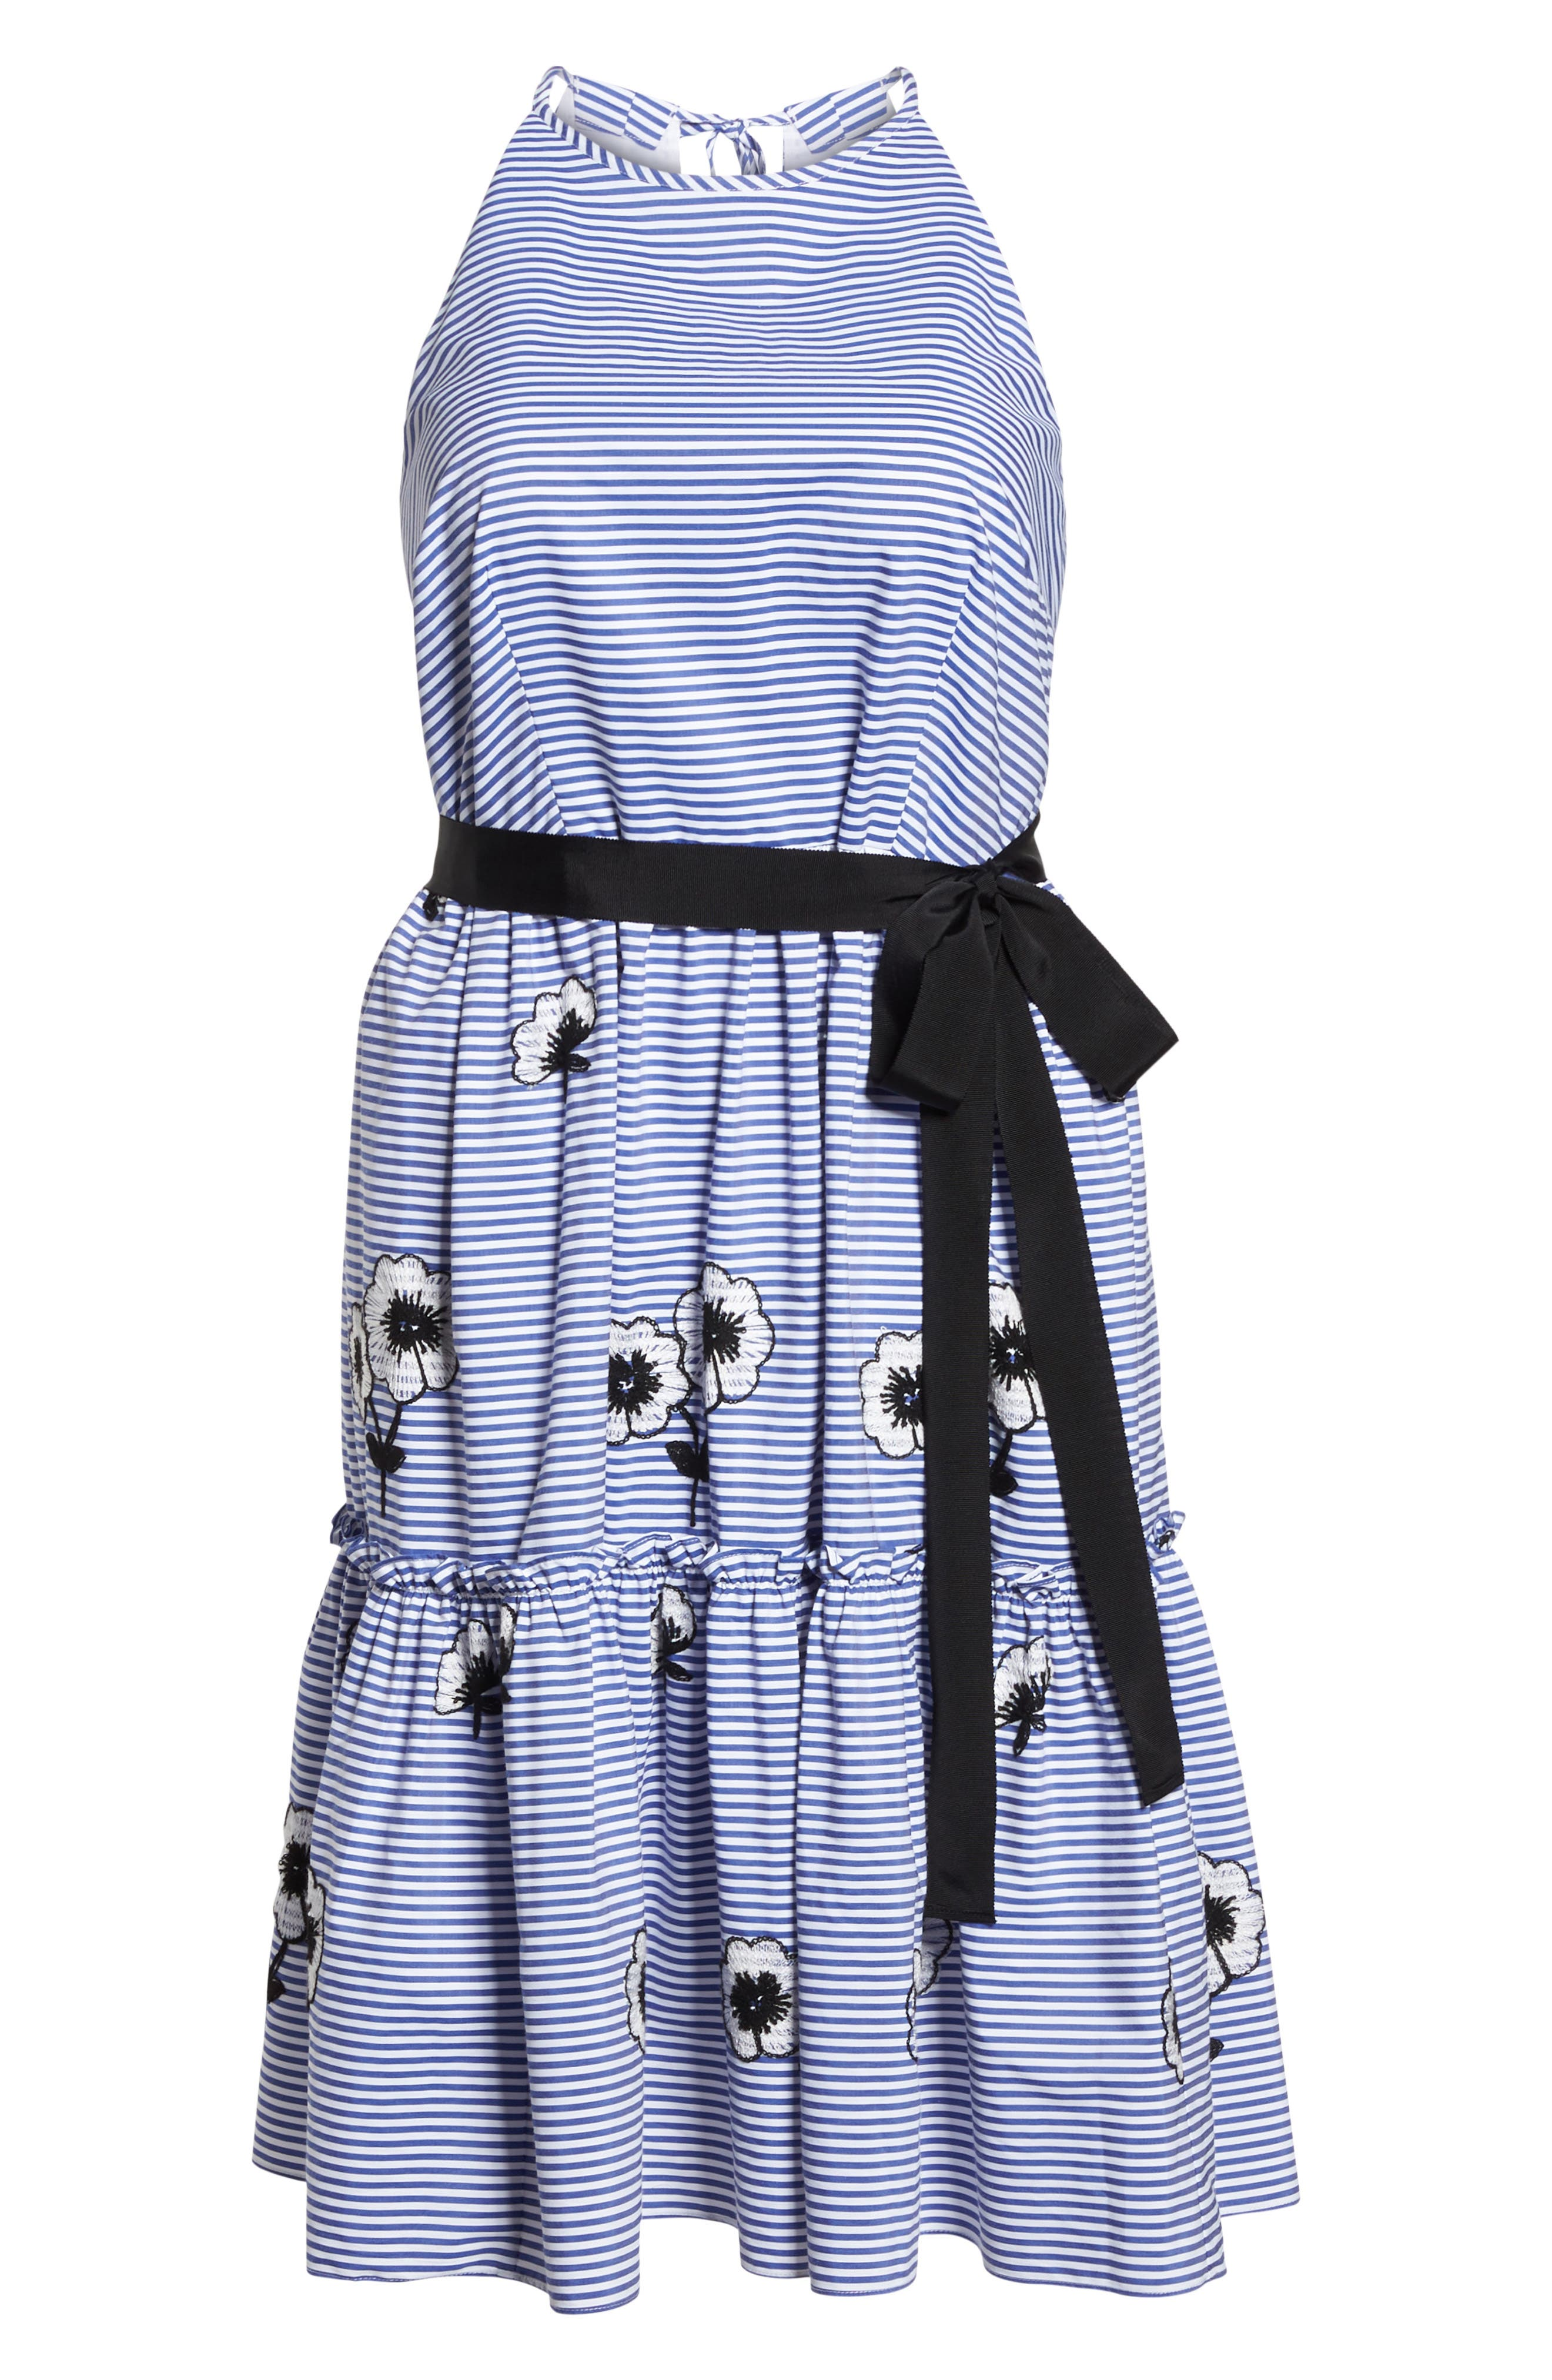 Embroidered Stripe Fit & Flare Dress,                             Alternate thumbnail 6, color,                             Blue/ White